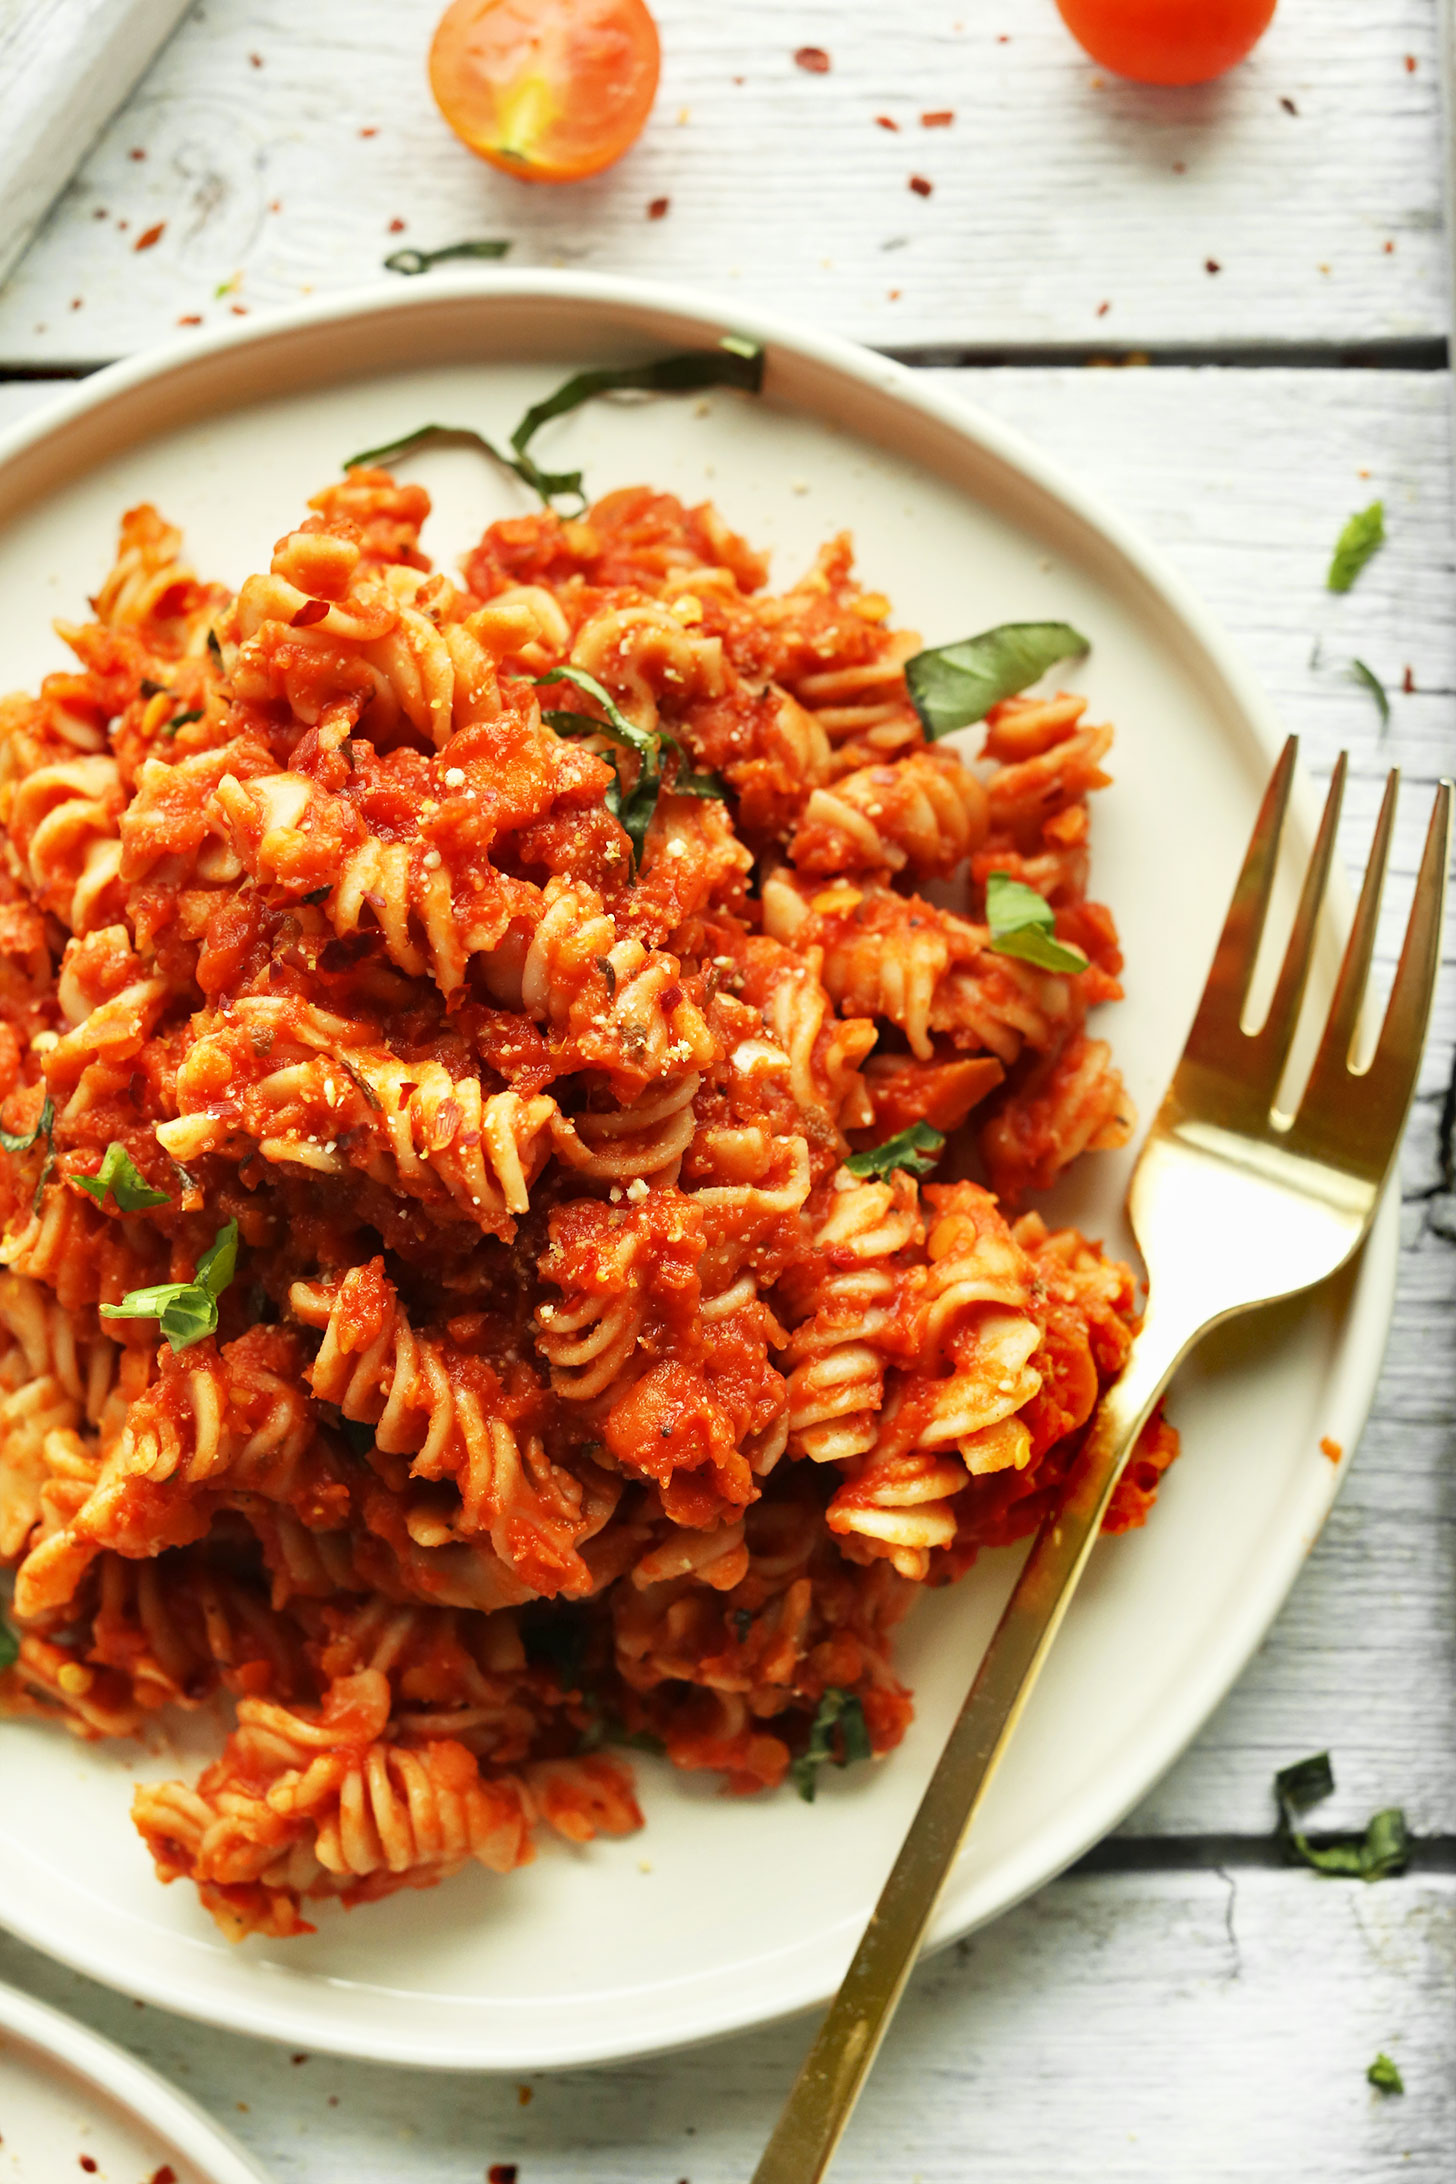 Plate filled with our Spicy Red Pasta with Lentils for a healthy gluten-free vegan meal